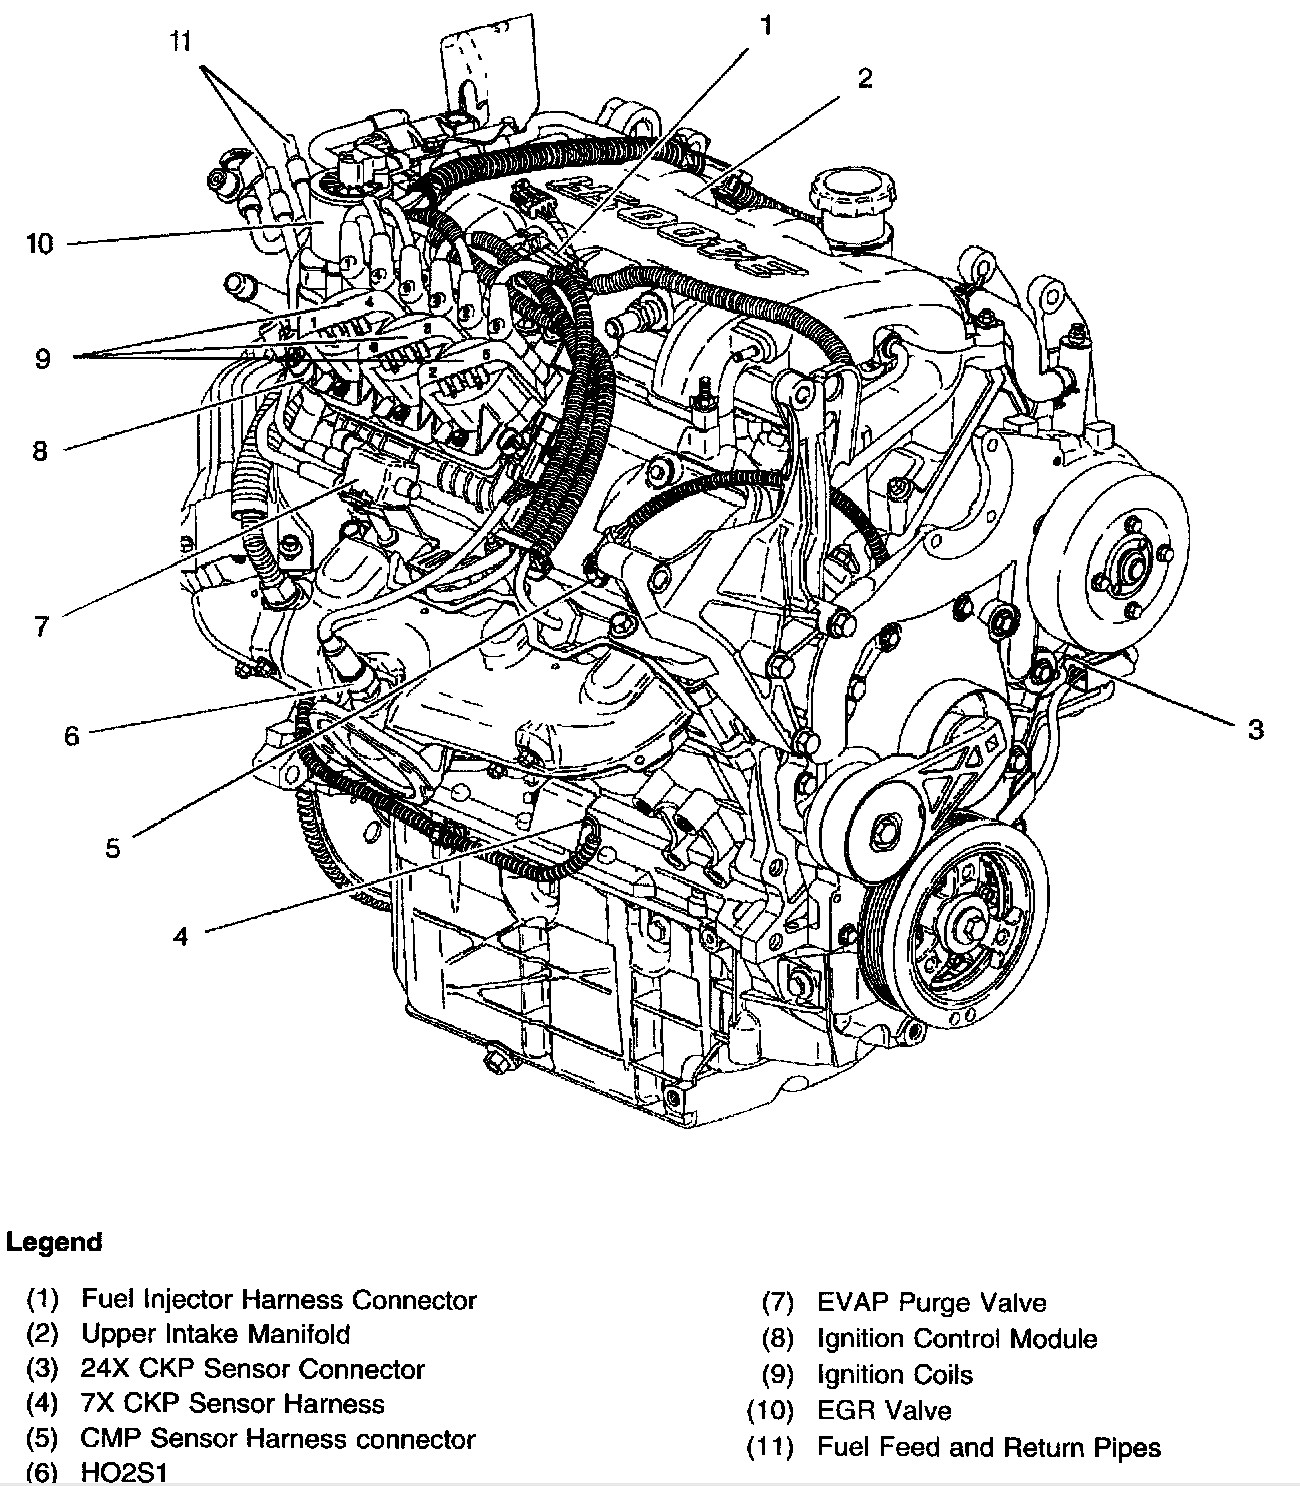 gm 3100 v6 engine diagram 7 12 ferienwohnung koblenz guels de \u2022prix 3800 engine diagram on 2000 pontiac grand prix engine diagram rh 6bb wapster co 3 1 engine diagram 3 1 engine diagram